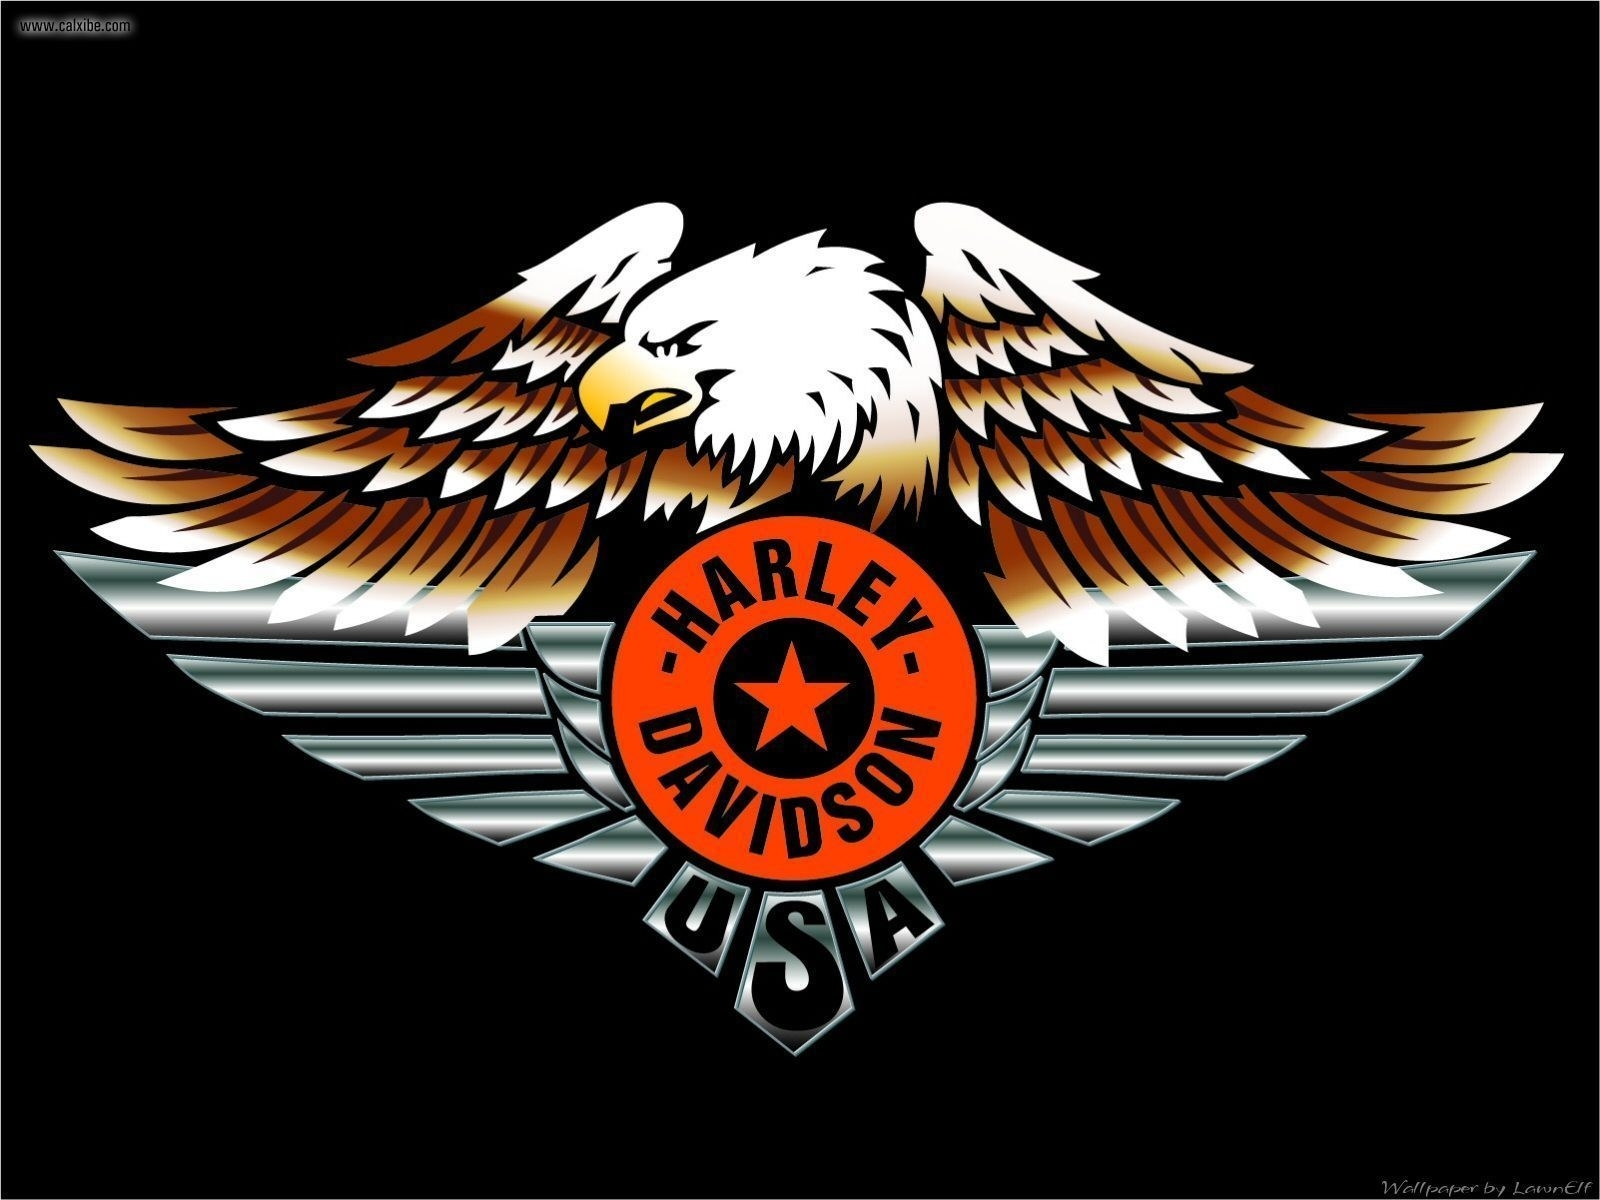 harley-davidson wallpapers and screensavers | harley-davidson-hd